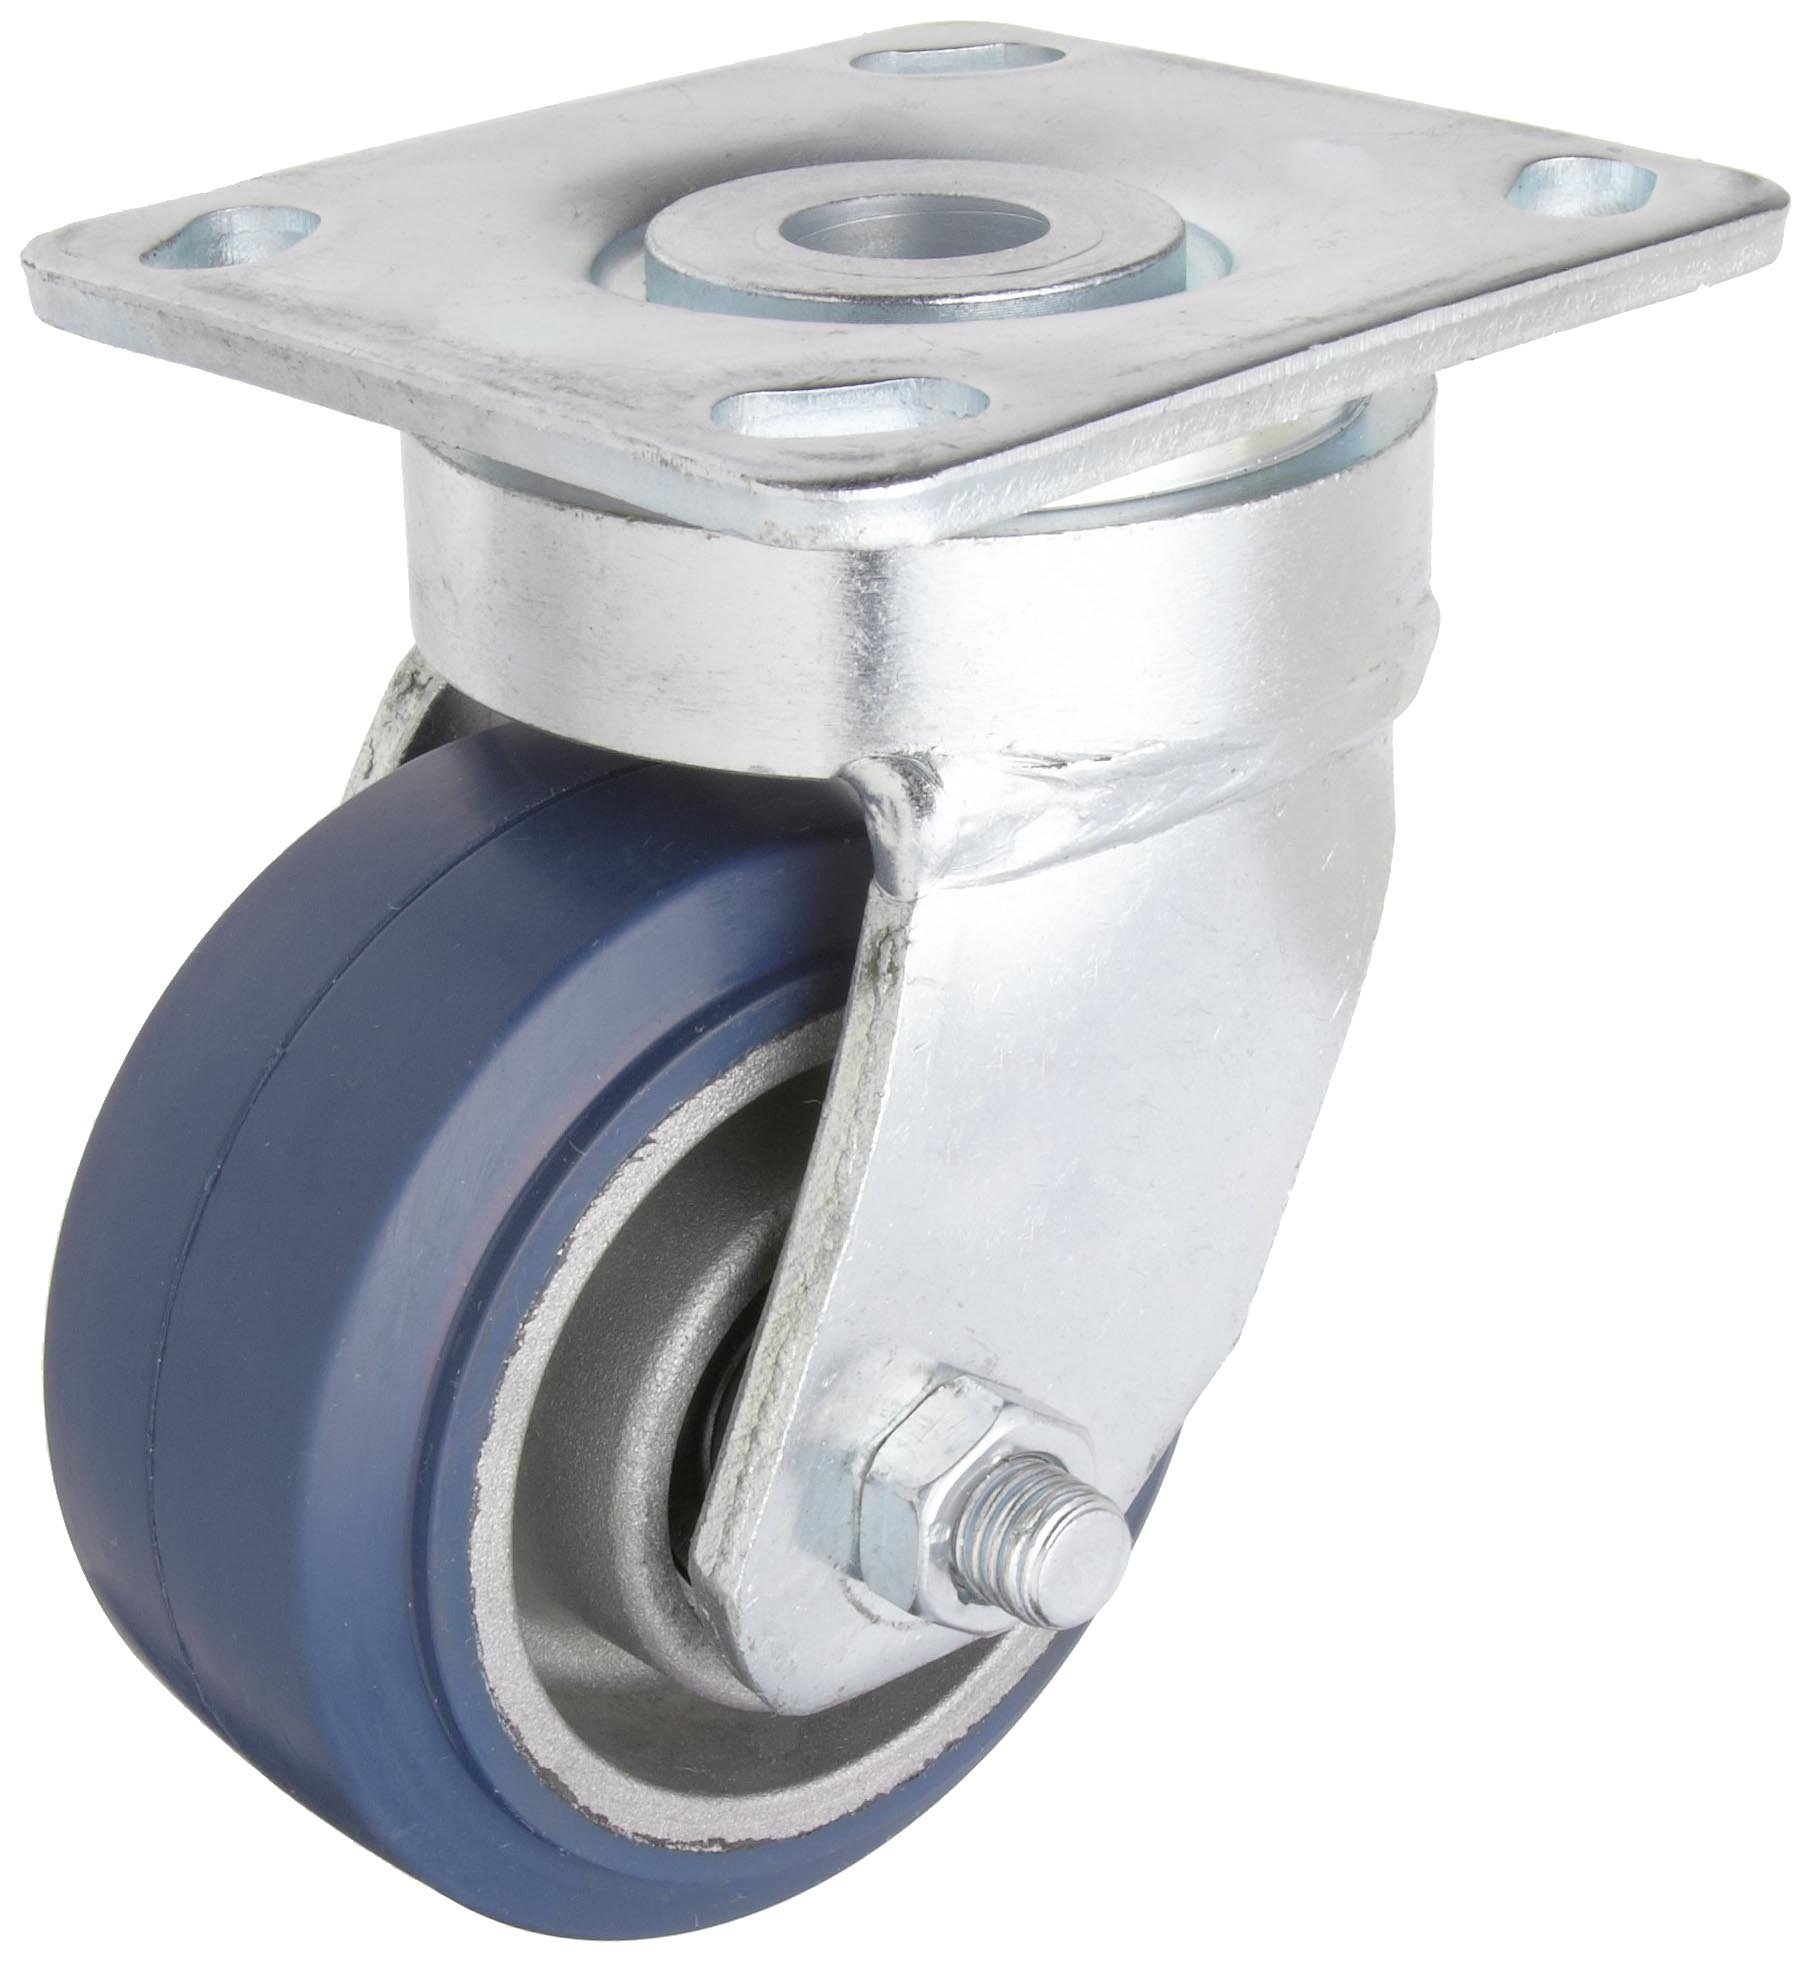 RWM Casters Freedom 48 Series Plate Caster, Swivel, Rubber on Aluminum Wheel, Ball Bearing, 525 lbs Capacity, 4'' Wheel Dia, 2'' Wheel Width, 5-5/8'' Mount Height, 4-1/2'' Plate Length, 4'' Plate Width